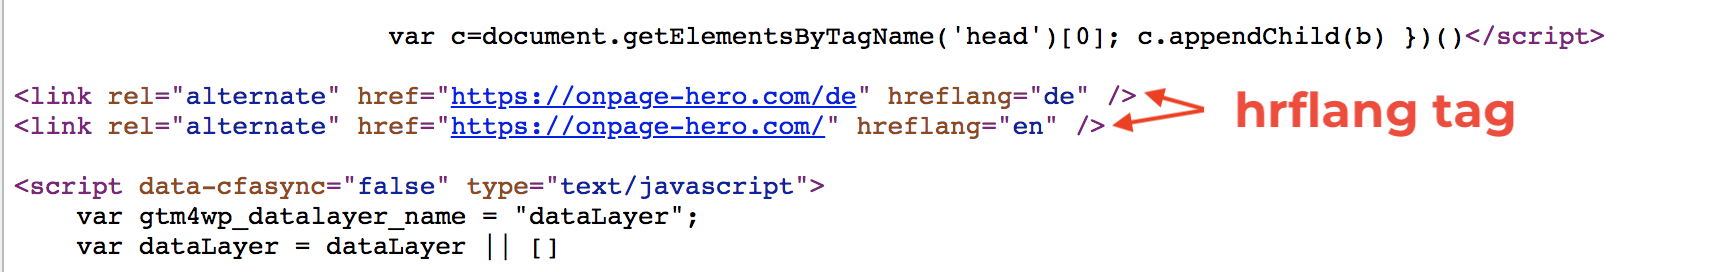 Hreflang Tag Source Code